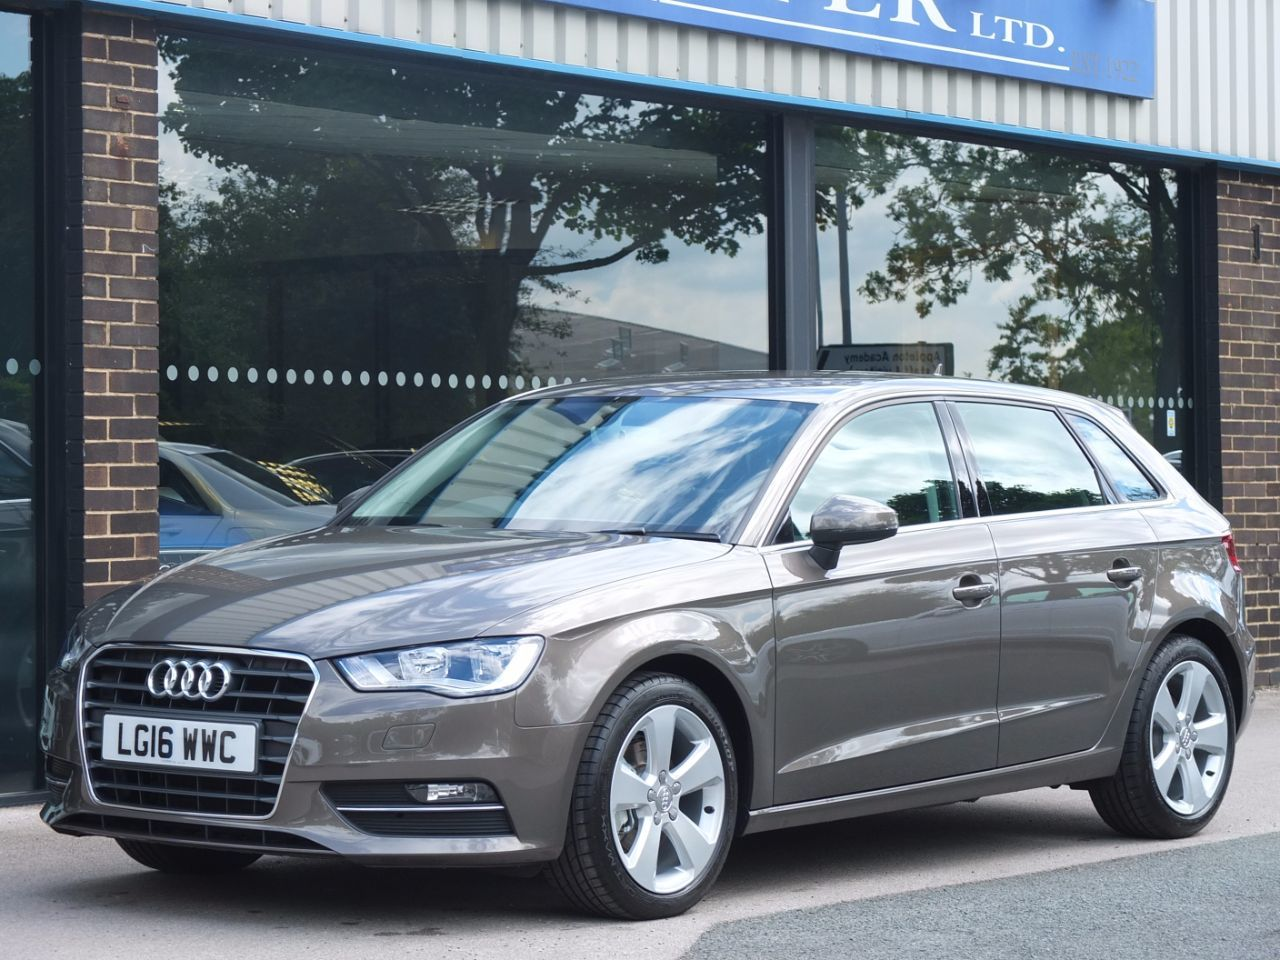 second hand audi a3 sportback 1 6 tdi 110ps sport s tronic sat nav for sale in bradford west. Black Bedroom Furniture Sets. Home Design Ideas